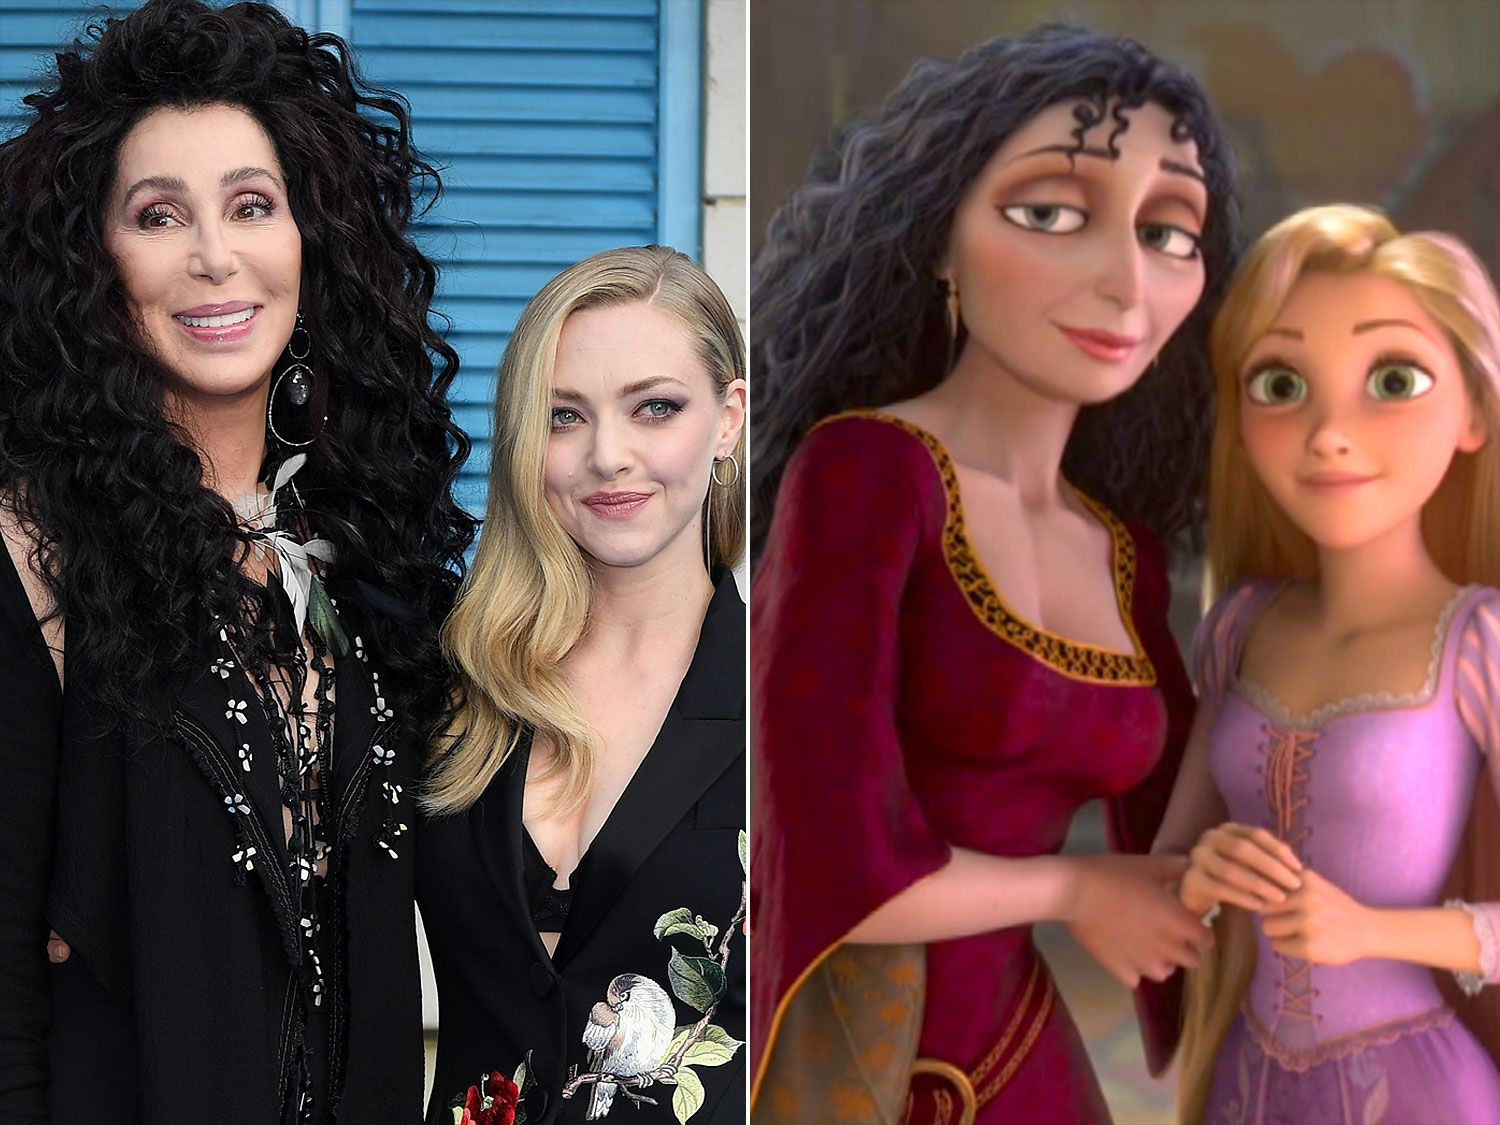 Twitter Calls For Cher And Amanda Seyfried To Star In A Live